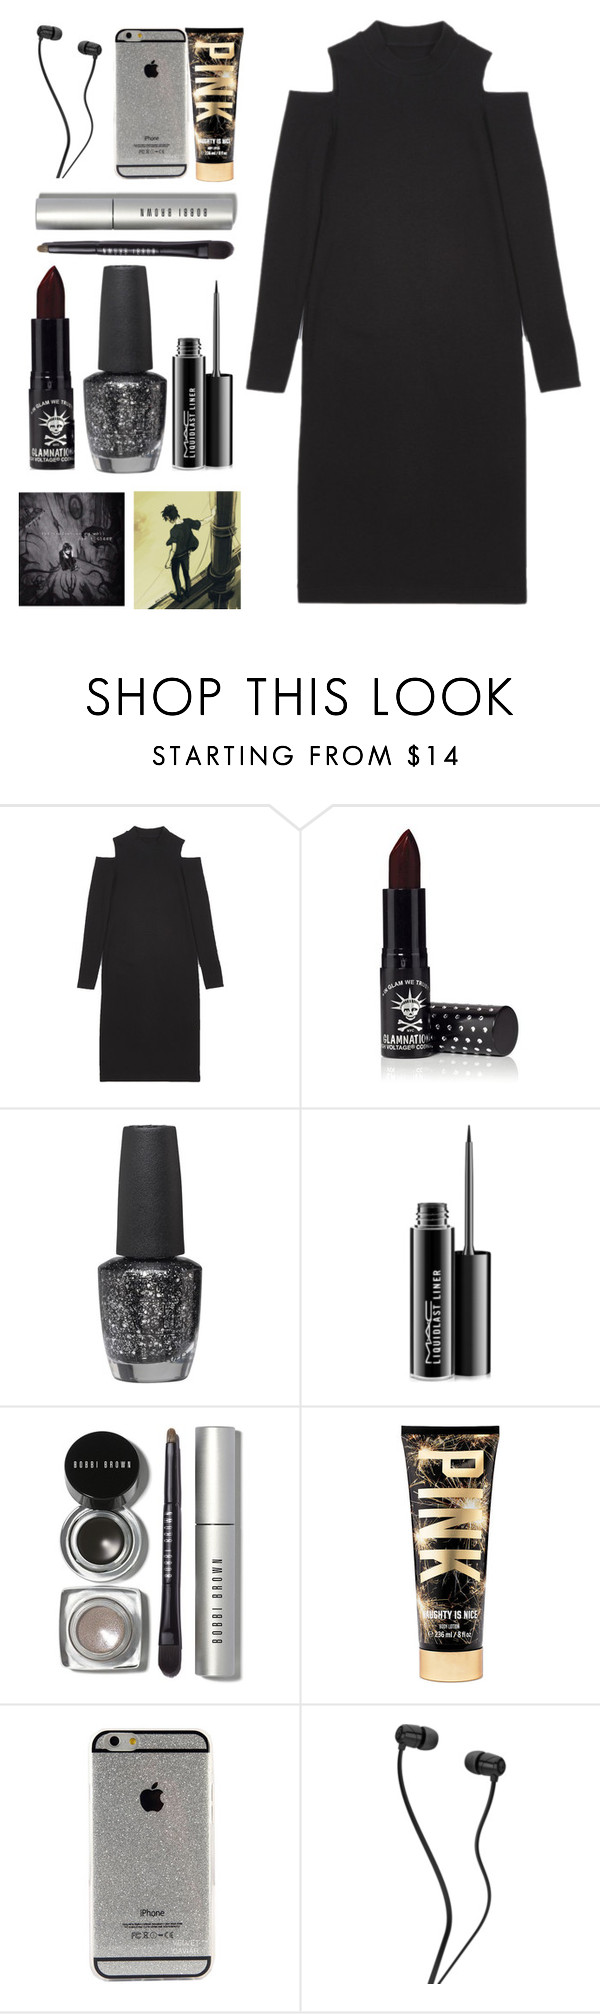 """""""YOUTH"""" by fangirlwriter ❤ liked on Polyvore featuring Manic Panic, OPI, MAC Cosmetics and Bobbi Brown Cosmetics"""